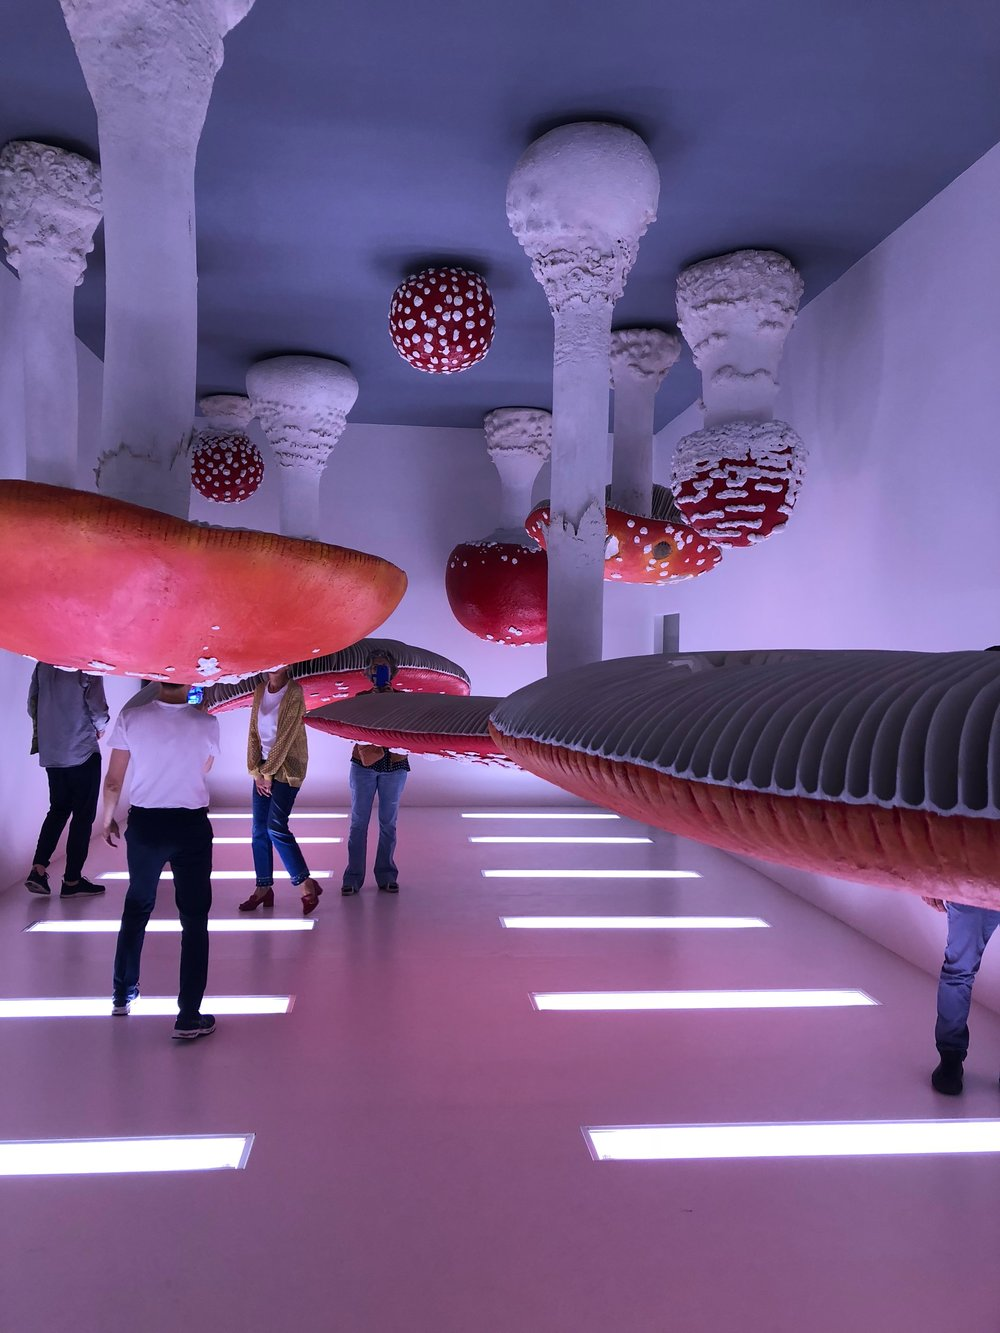 Installation  Upside Down Mushroom Room  by Carsten Höller